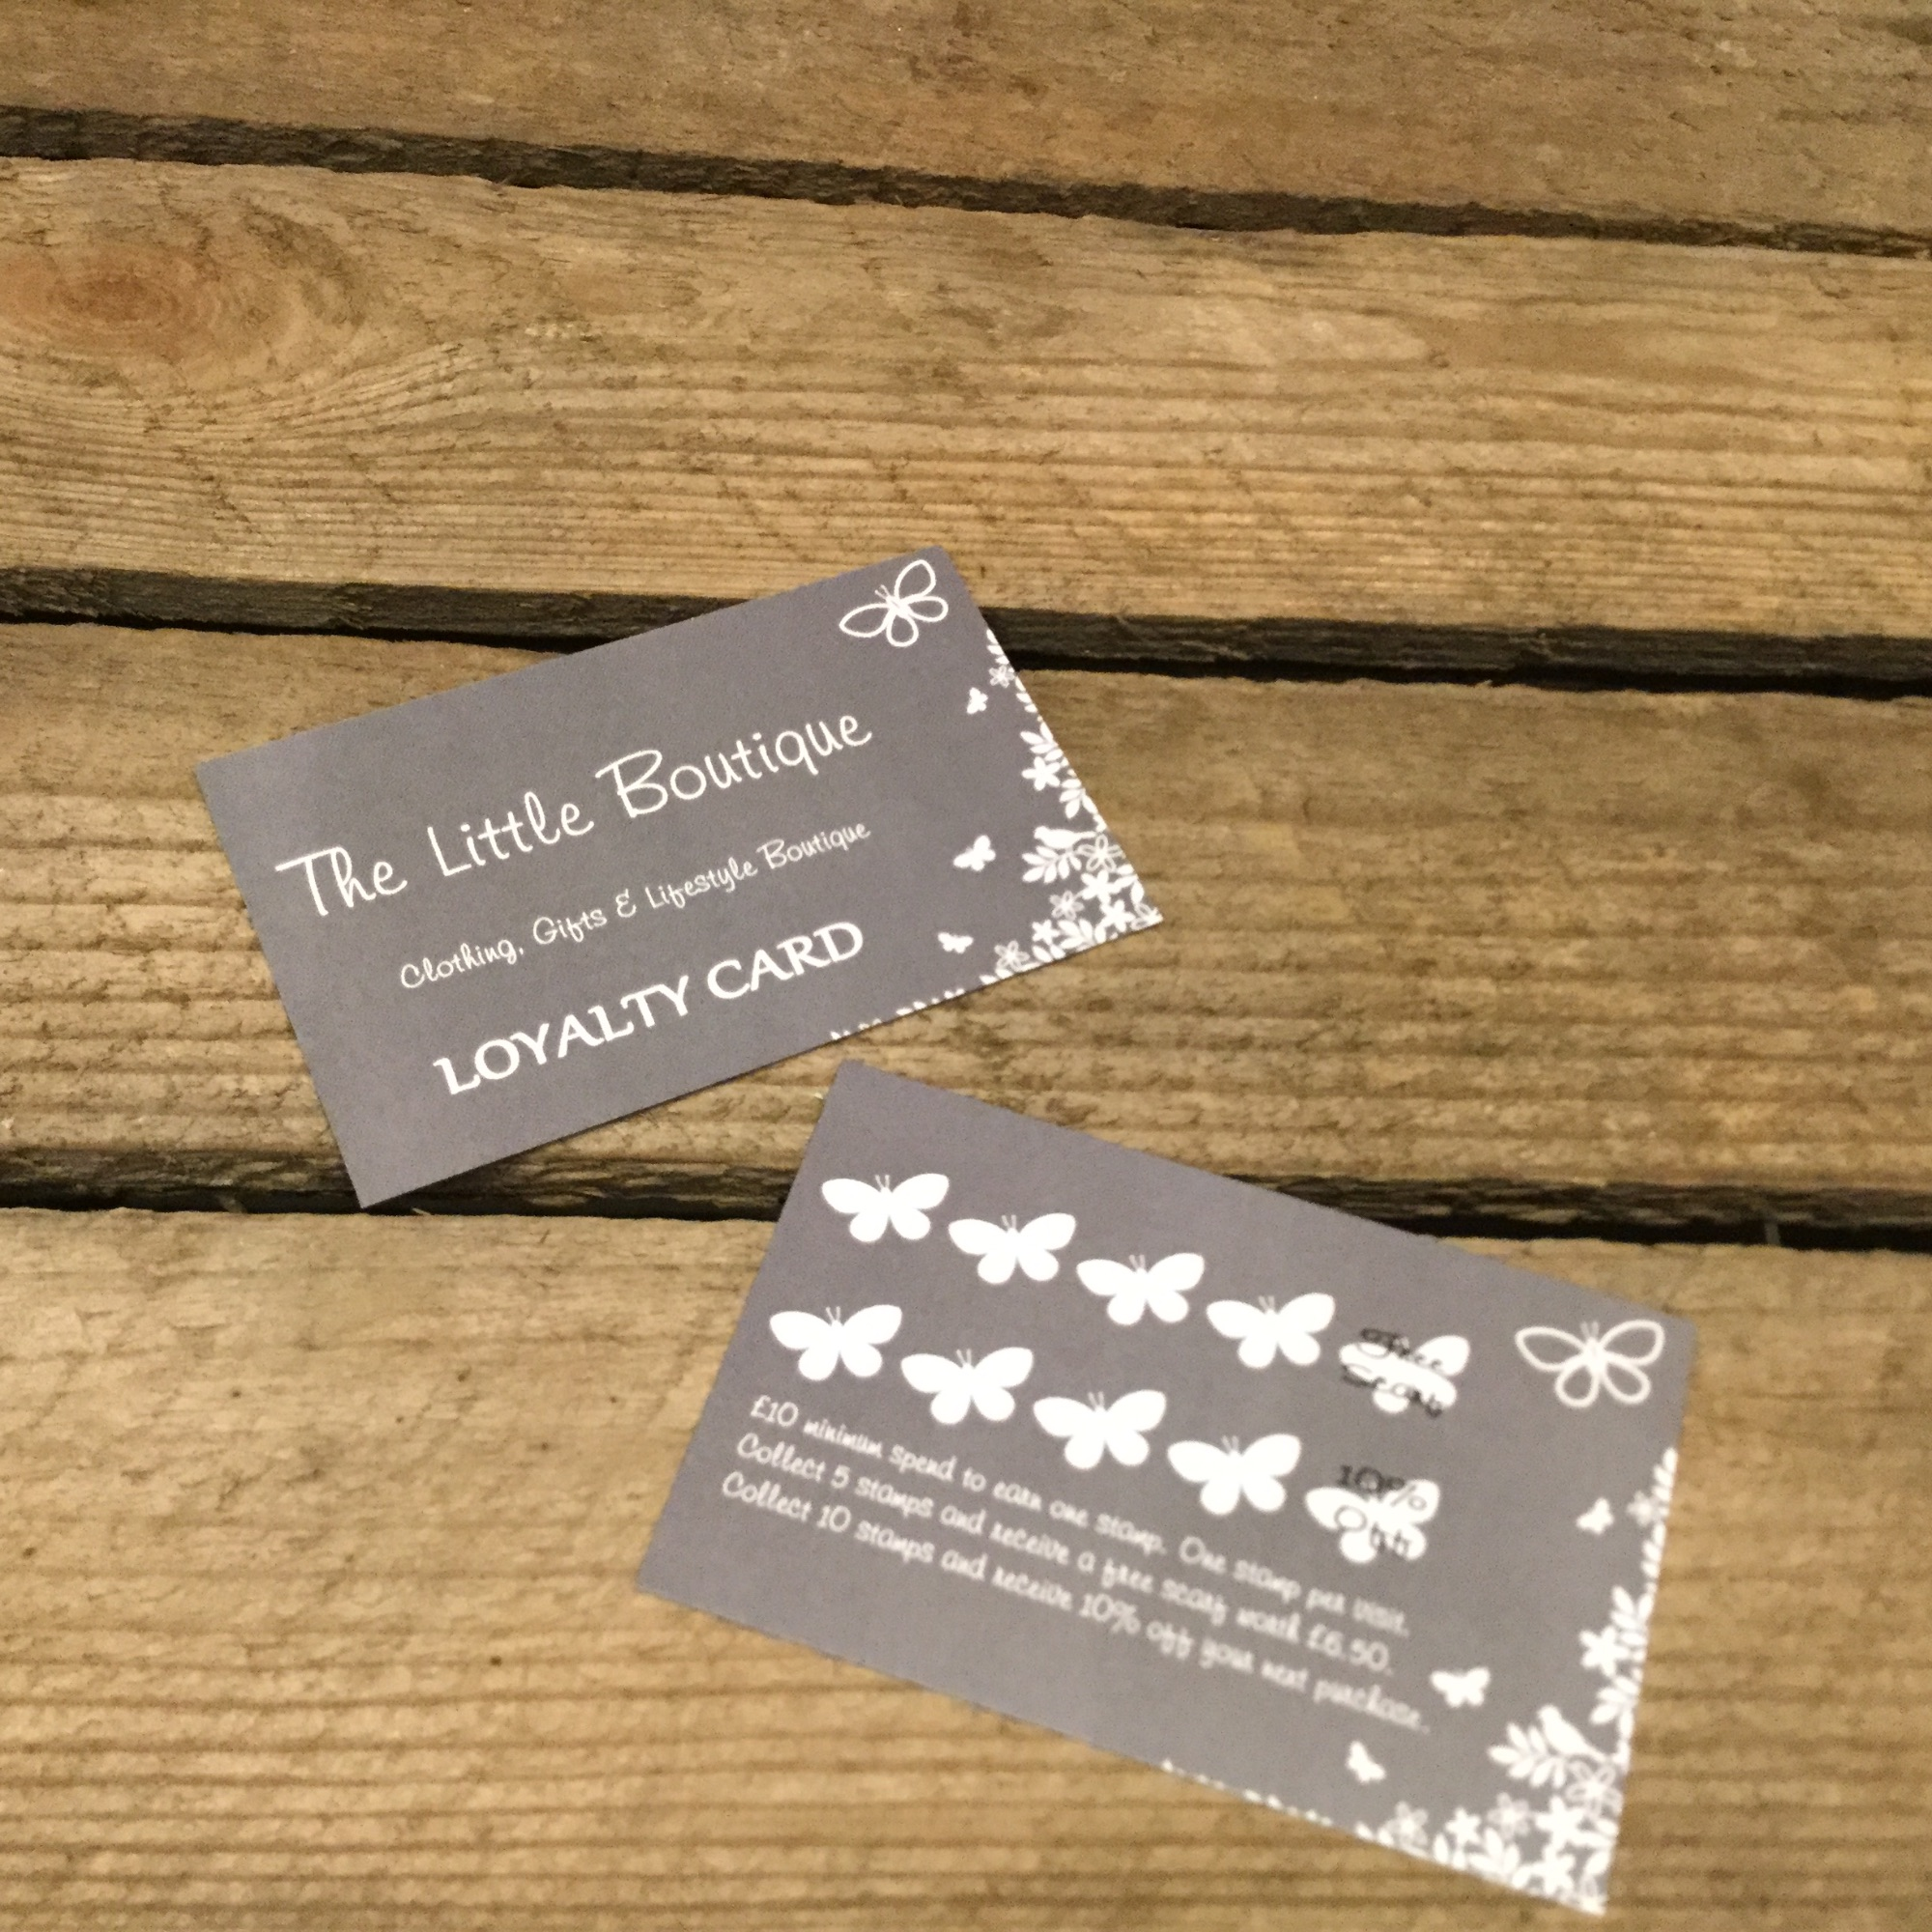 Loyalty card rewards from The Little Boutique